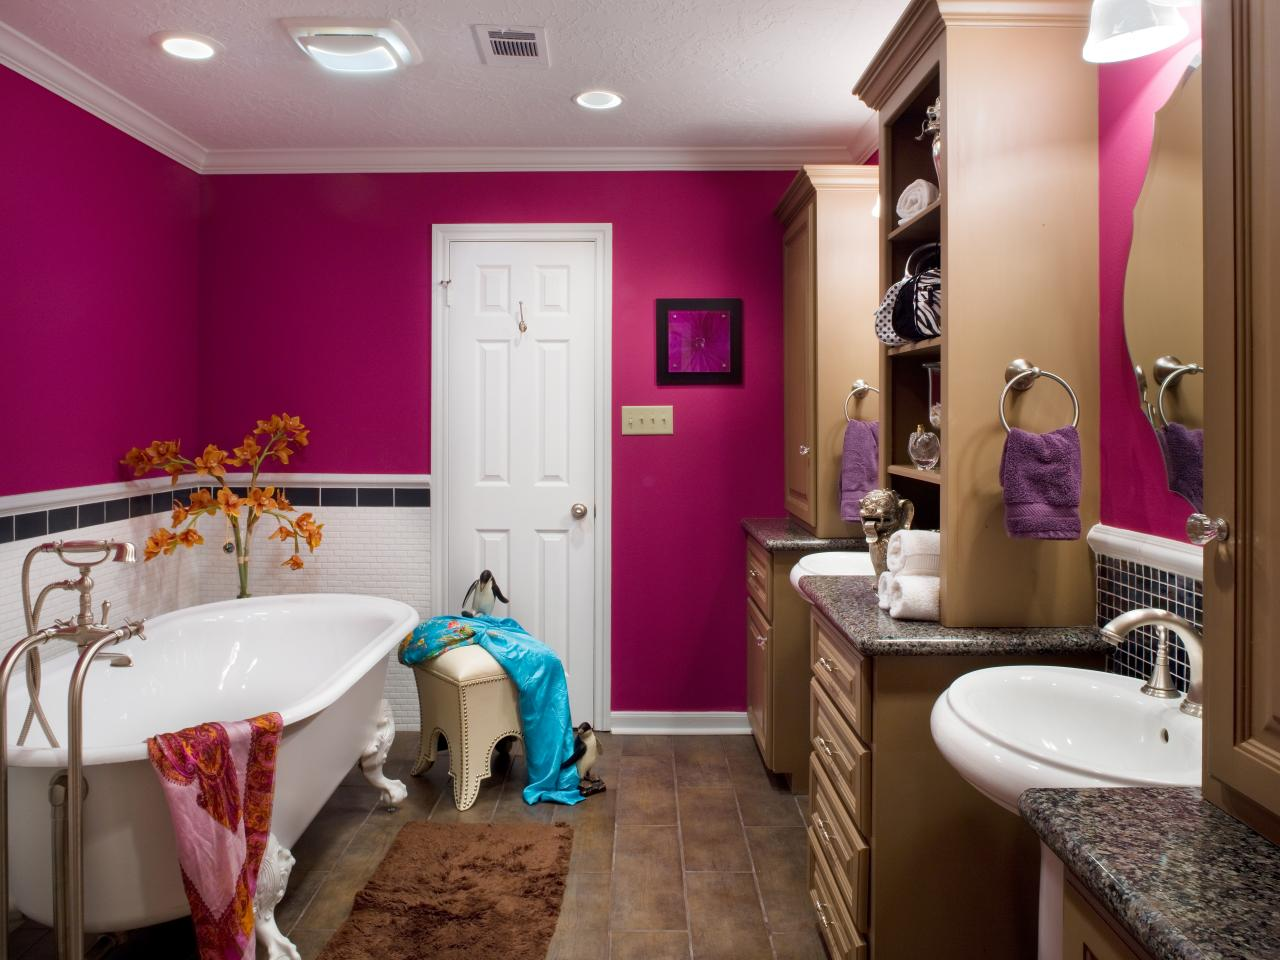 Girls Bathrooms Bathroom Design Styles Pictures Ideas Tips From Hgtv Hgtv